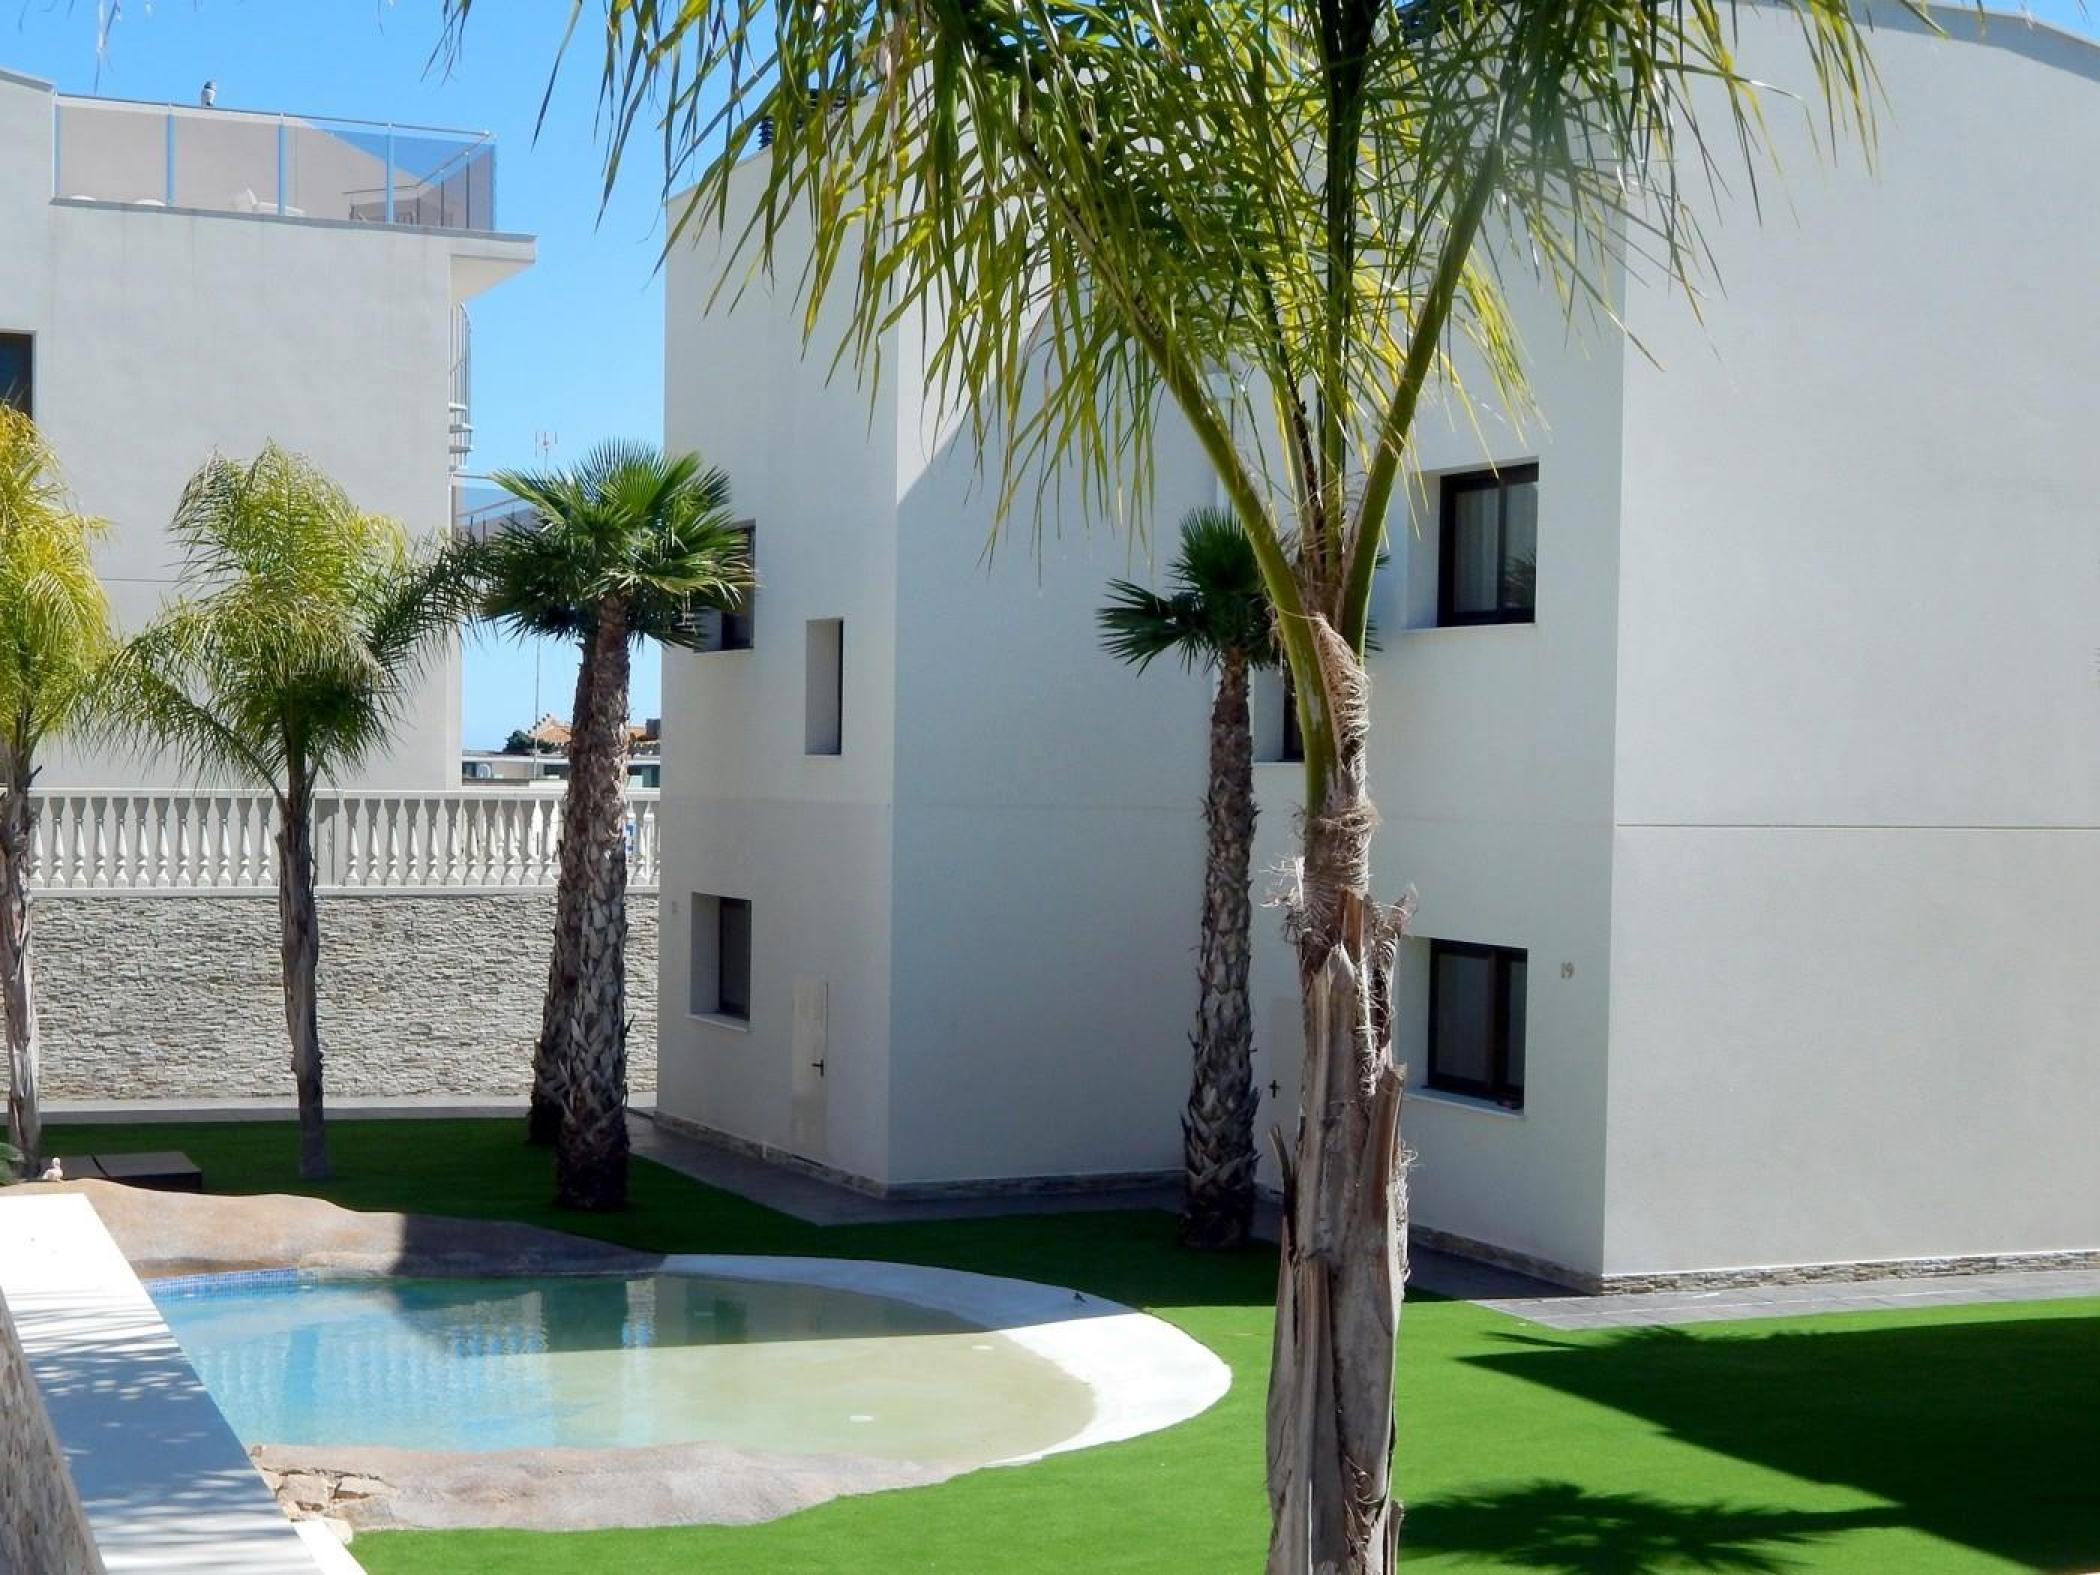 Rent Villa with Swimming pool in Platja d'Aro - Girorooms Travel Calma Holiday Villas jacuzzi 11 - 30